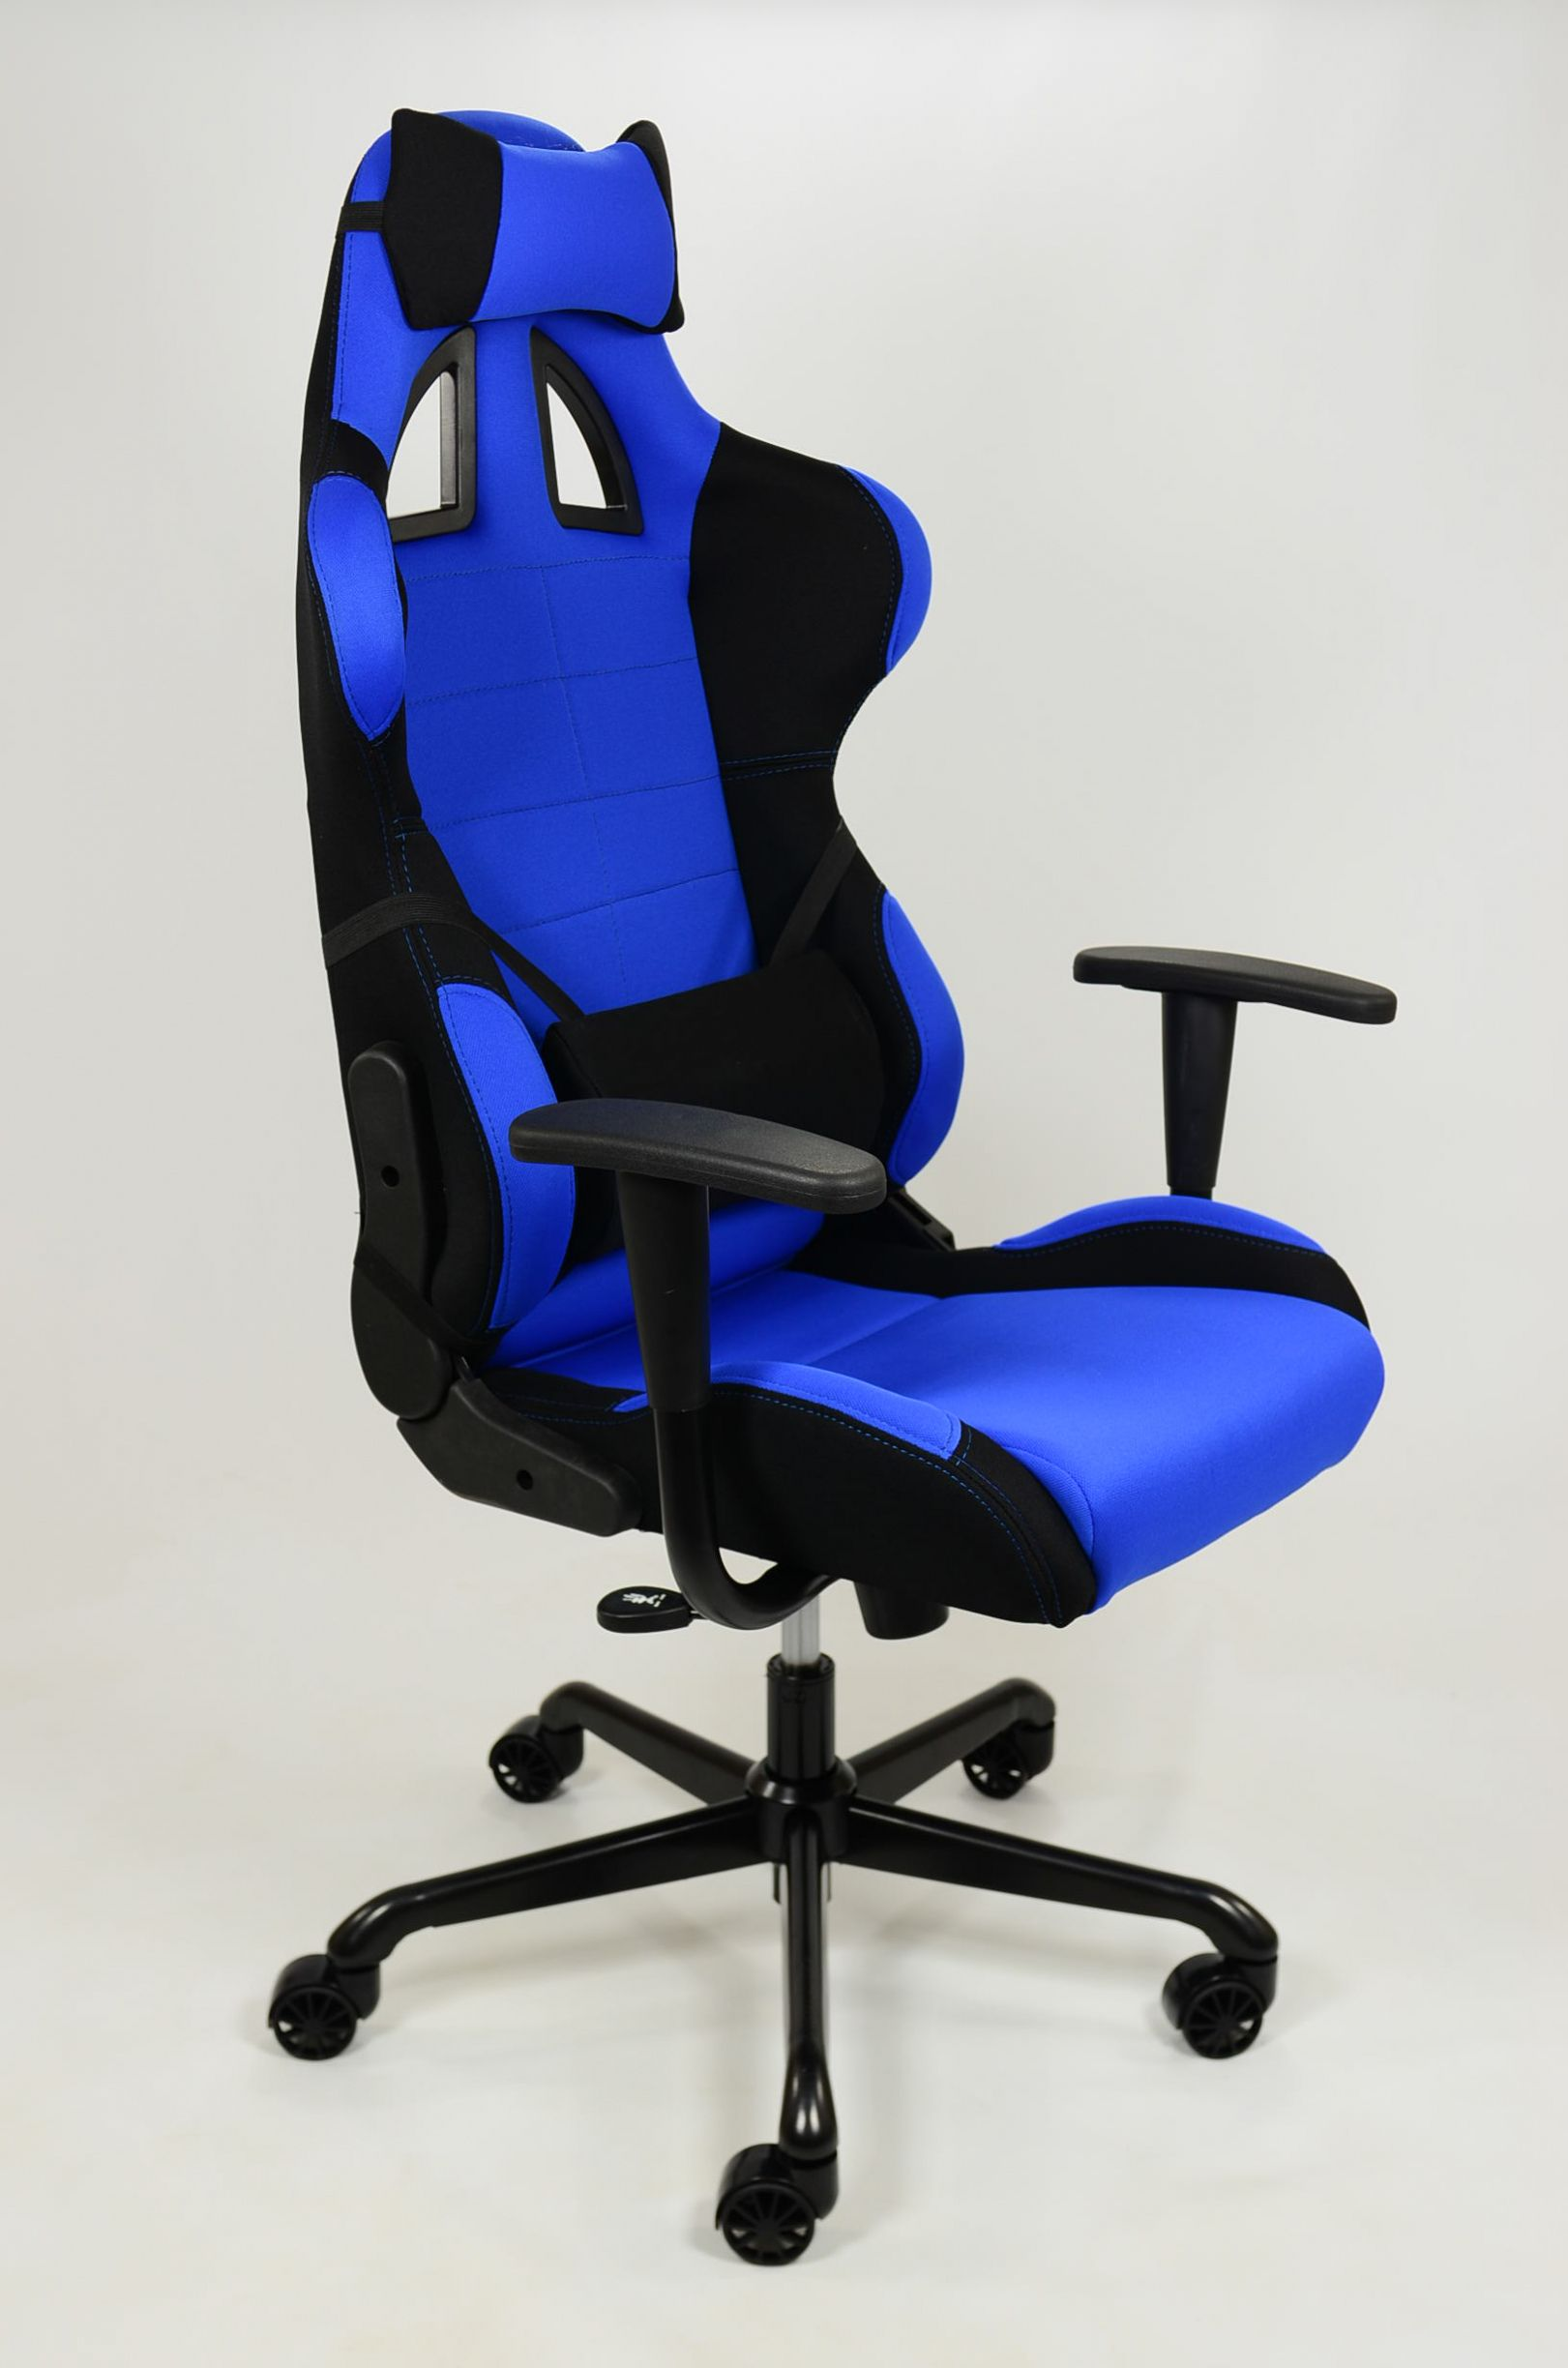 Good Desk Chair For Gaming   Best Led Desk Lamp Check More At Http:/